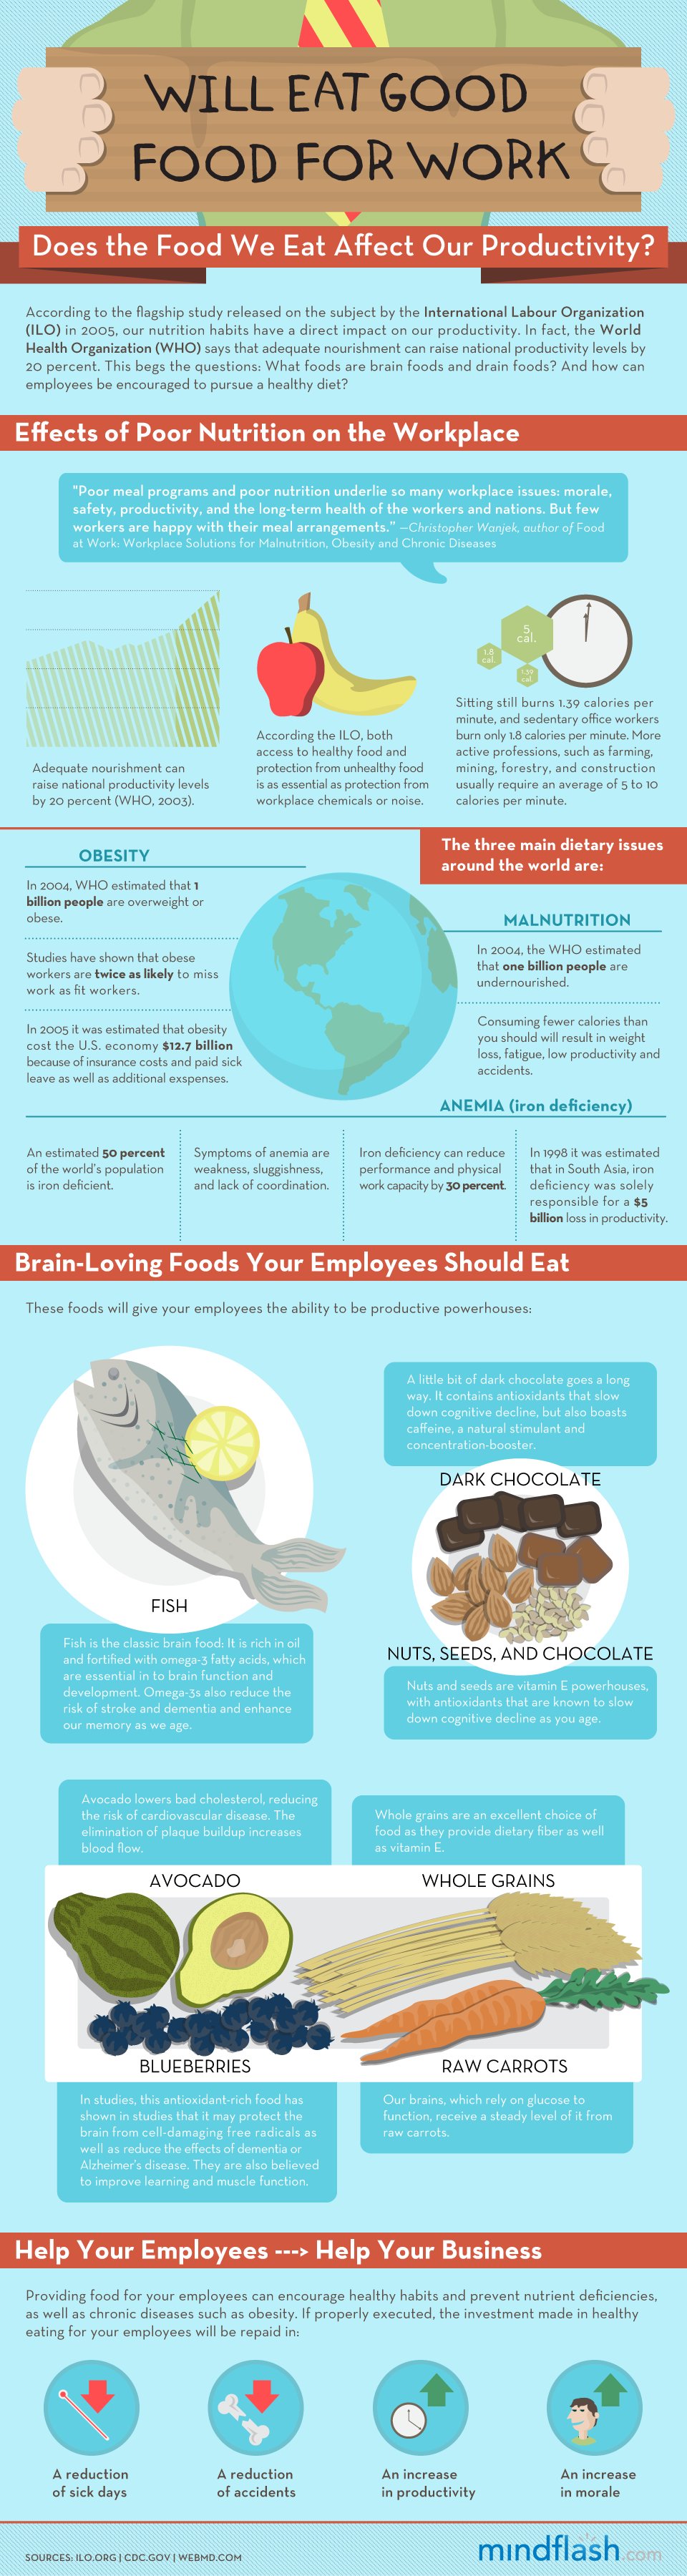 Does The Food We Eat Affect Our Productivity?